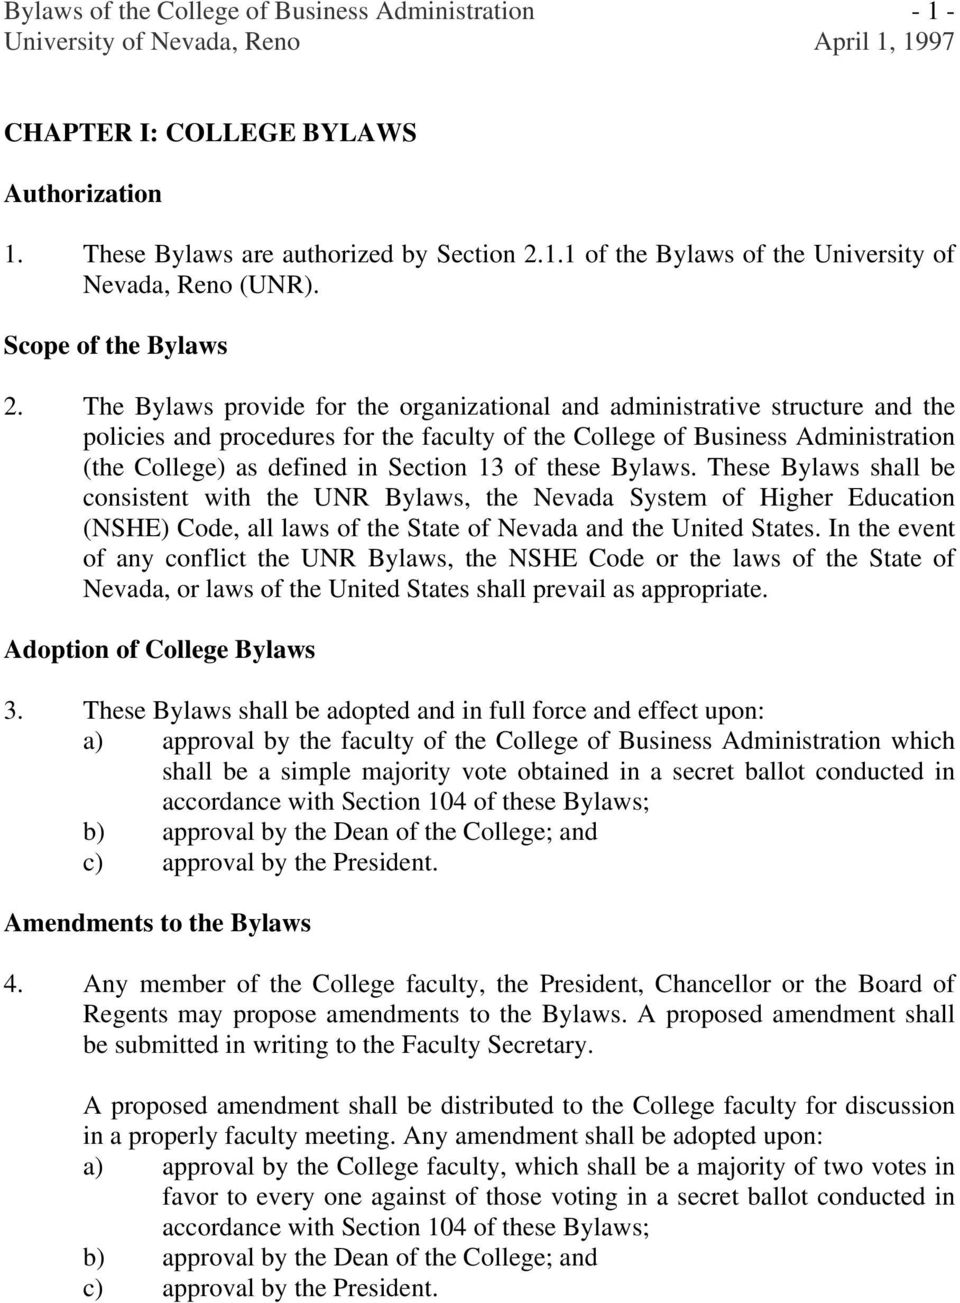 of these Bylaws. These Bylaws shall be consistent with the UNR Bylaws, the Nevada System of Higher Education (NSHE) Code, all laws of the State of Nevada and the United States.